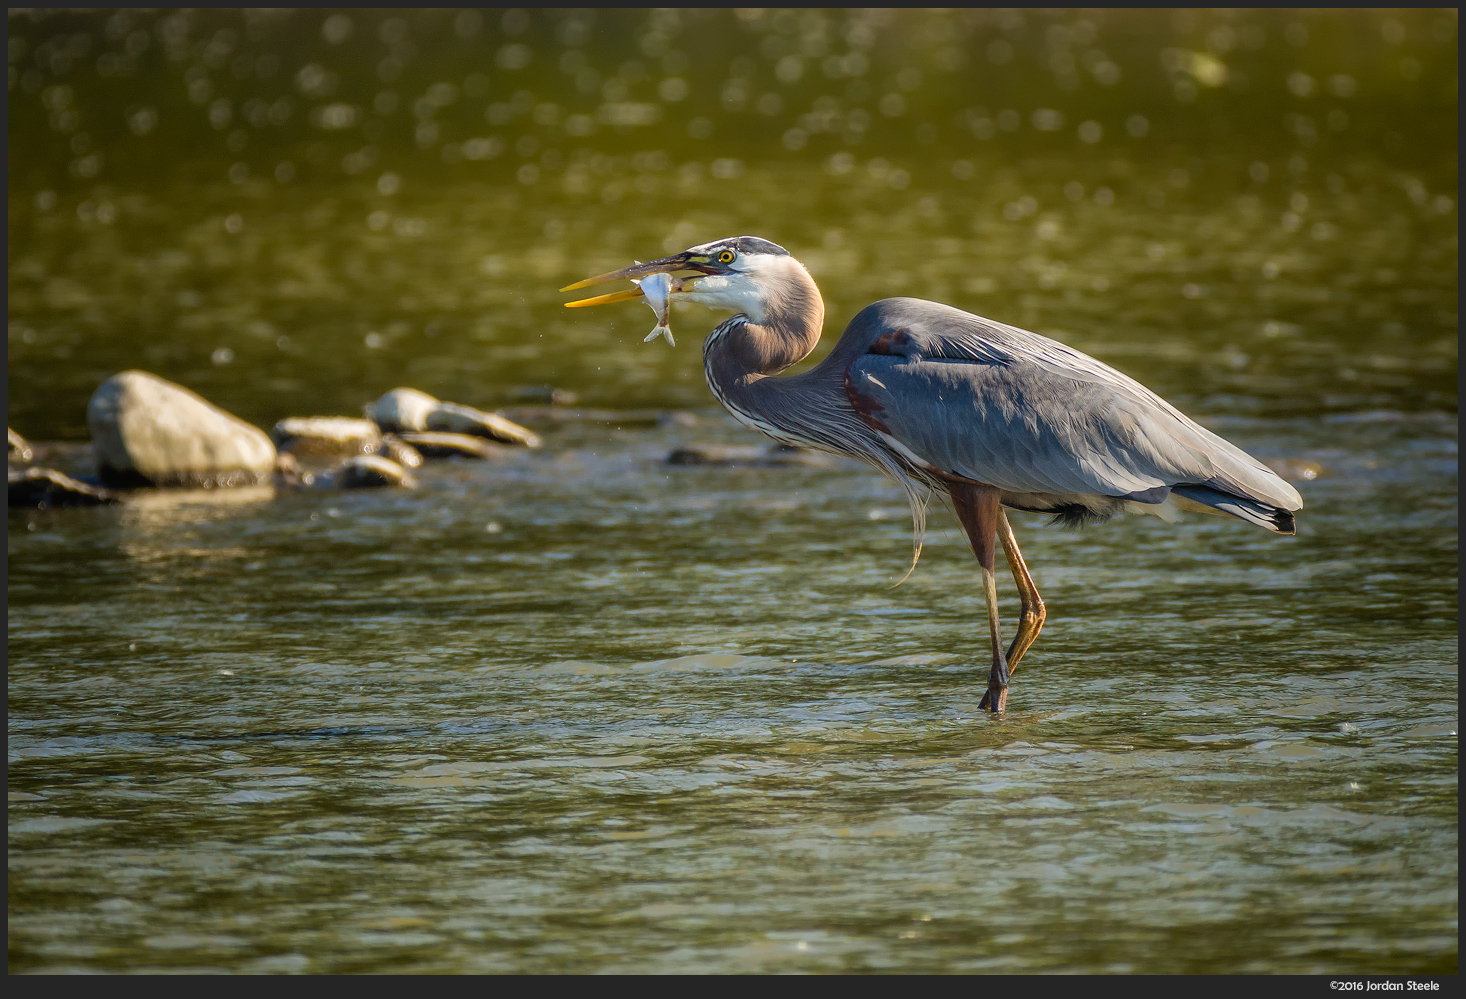 Great Blue Heron Fishing - Olympus OM-D E-M10 Mark II with Panasonic Leica 100-400mm f/4-6.3 @ 400mm, f/6.3